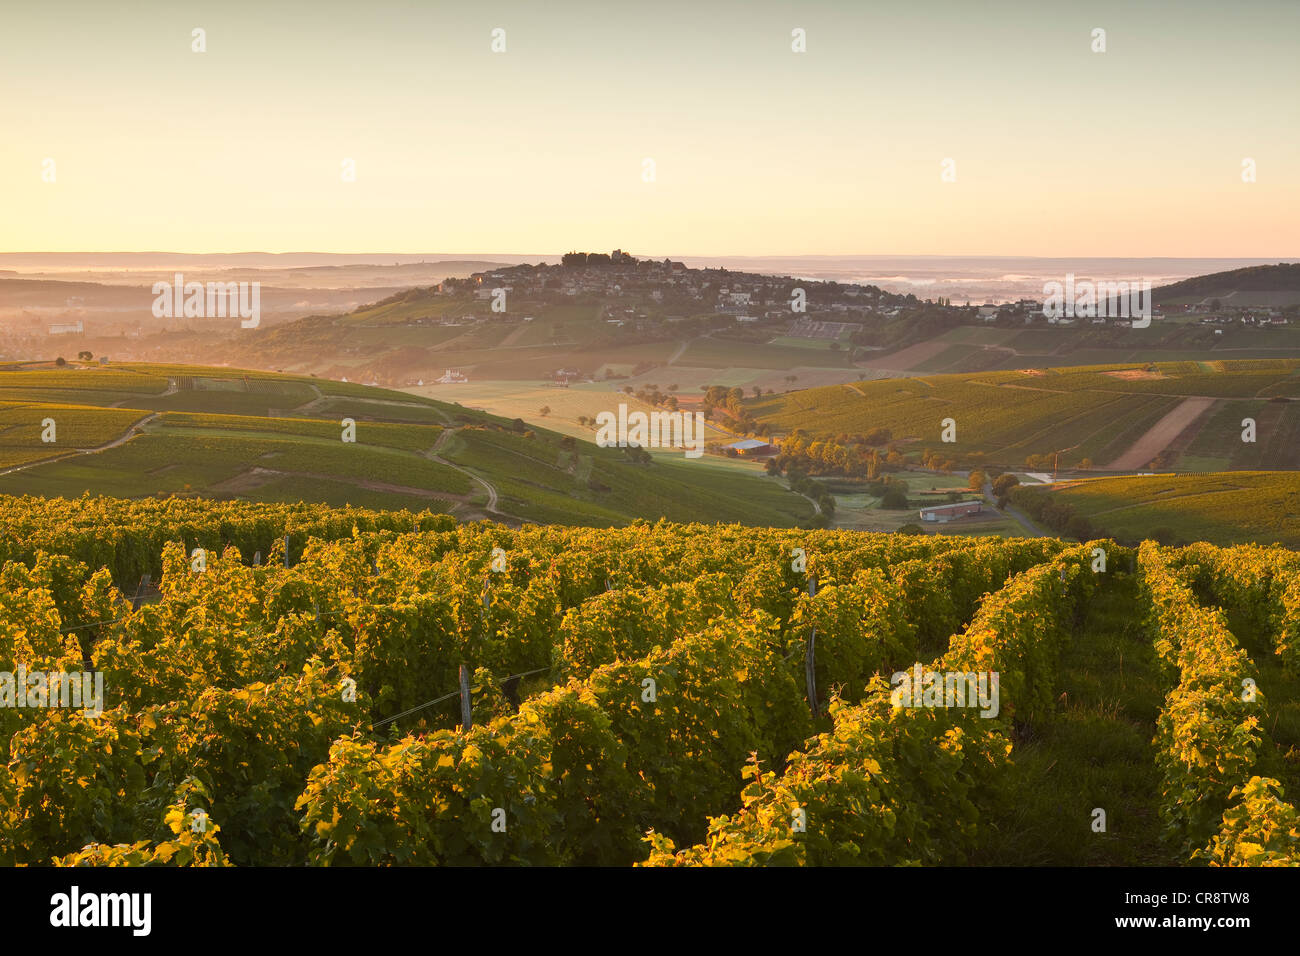 The vineyards of Sancerre in France. It is found in the Loire Valley area. bhz - Stock Image